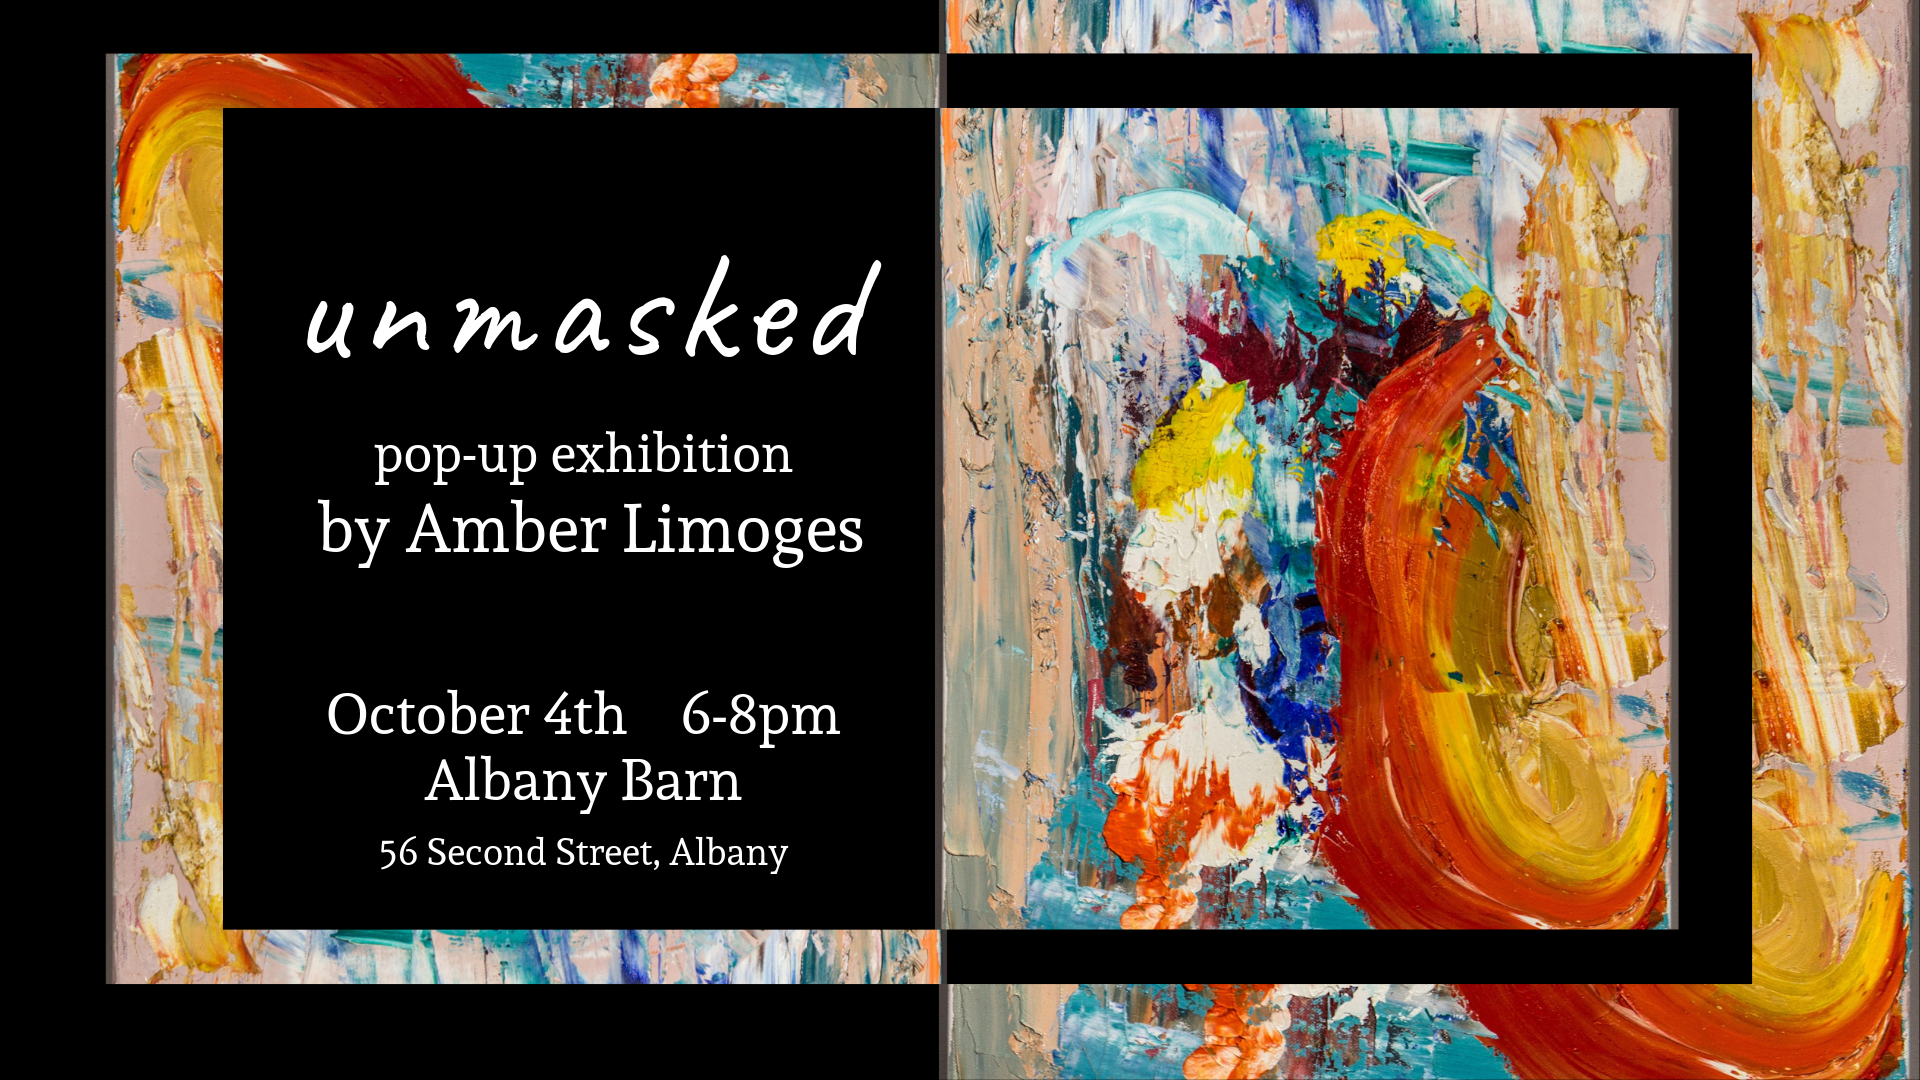 Unmasked: Solo Pop-up Exhibition By Amber Limoges-happening October 4th At The Barn!